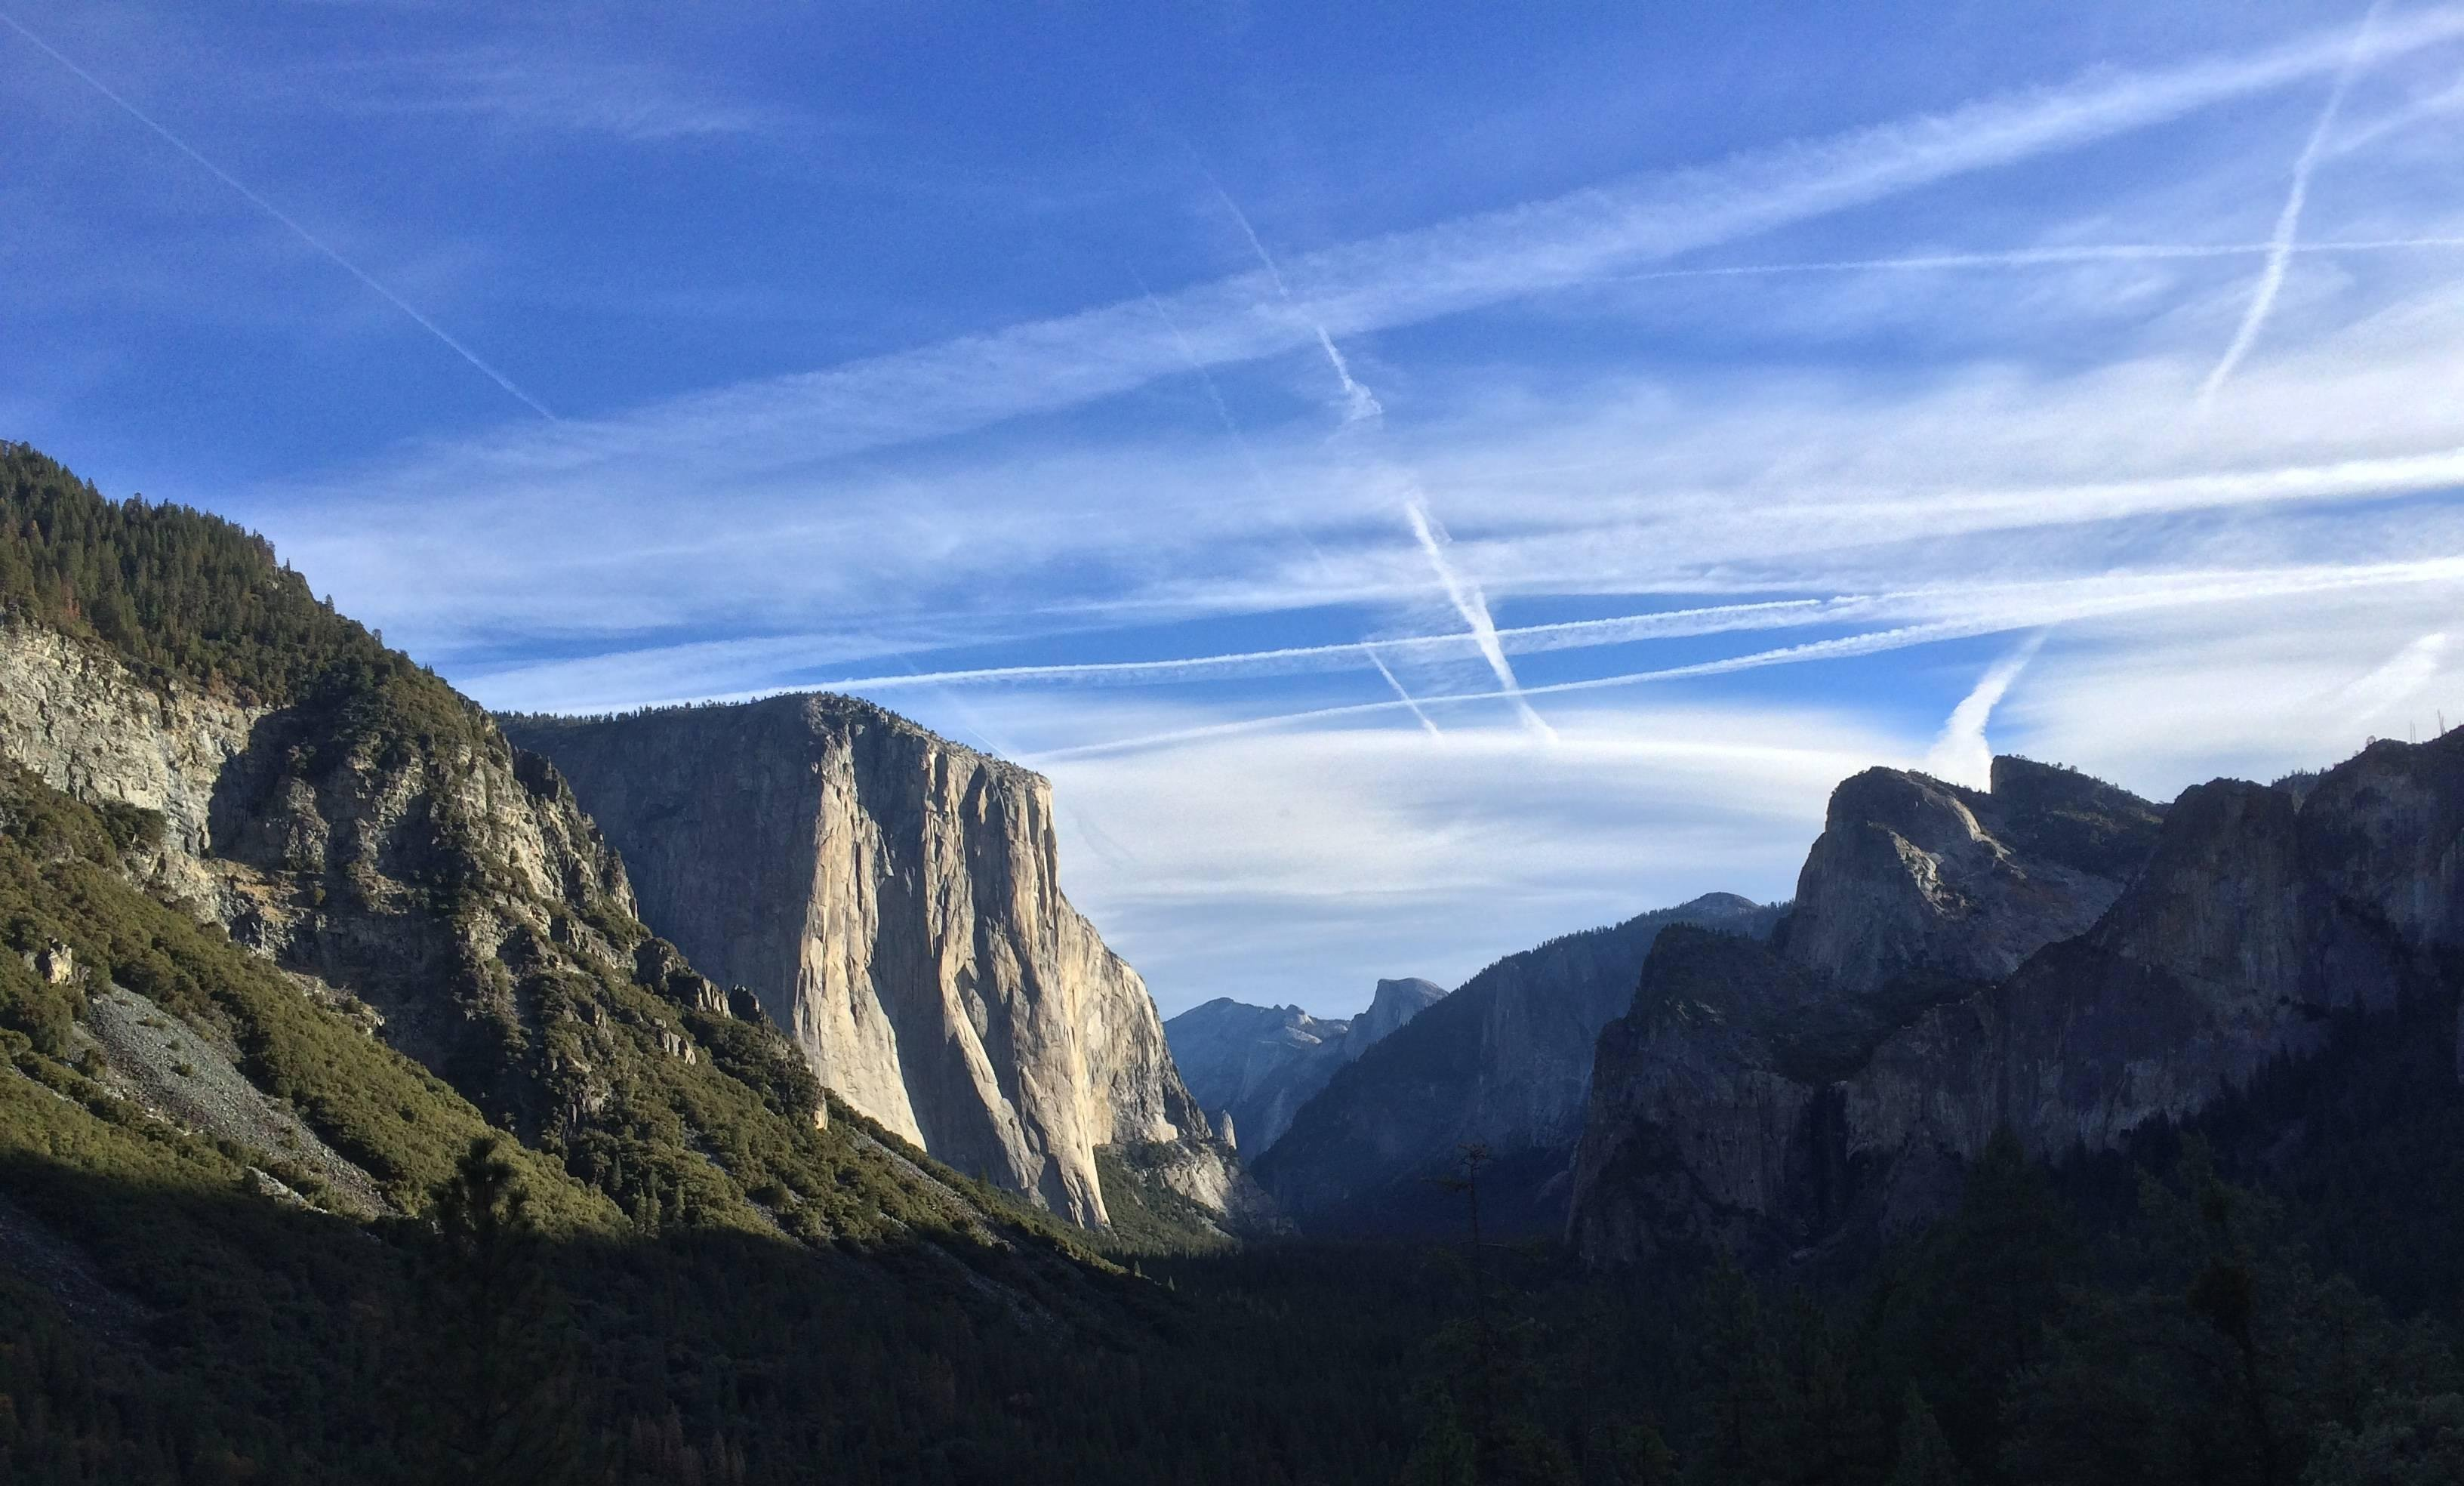 I Only Recently Realized How Good This Picture I Took Last Year With My IPhone is Yosemite National Park wallpaper